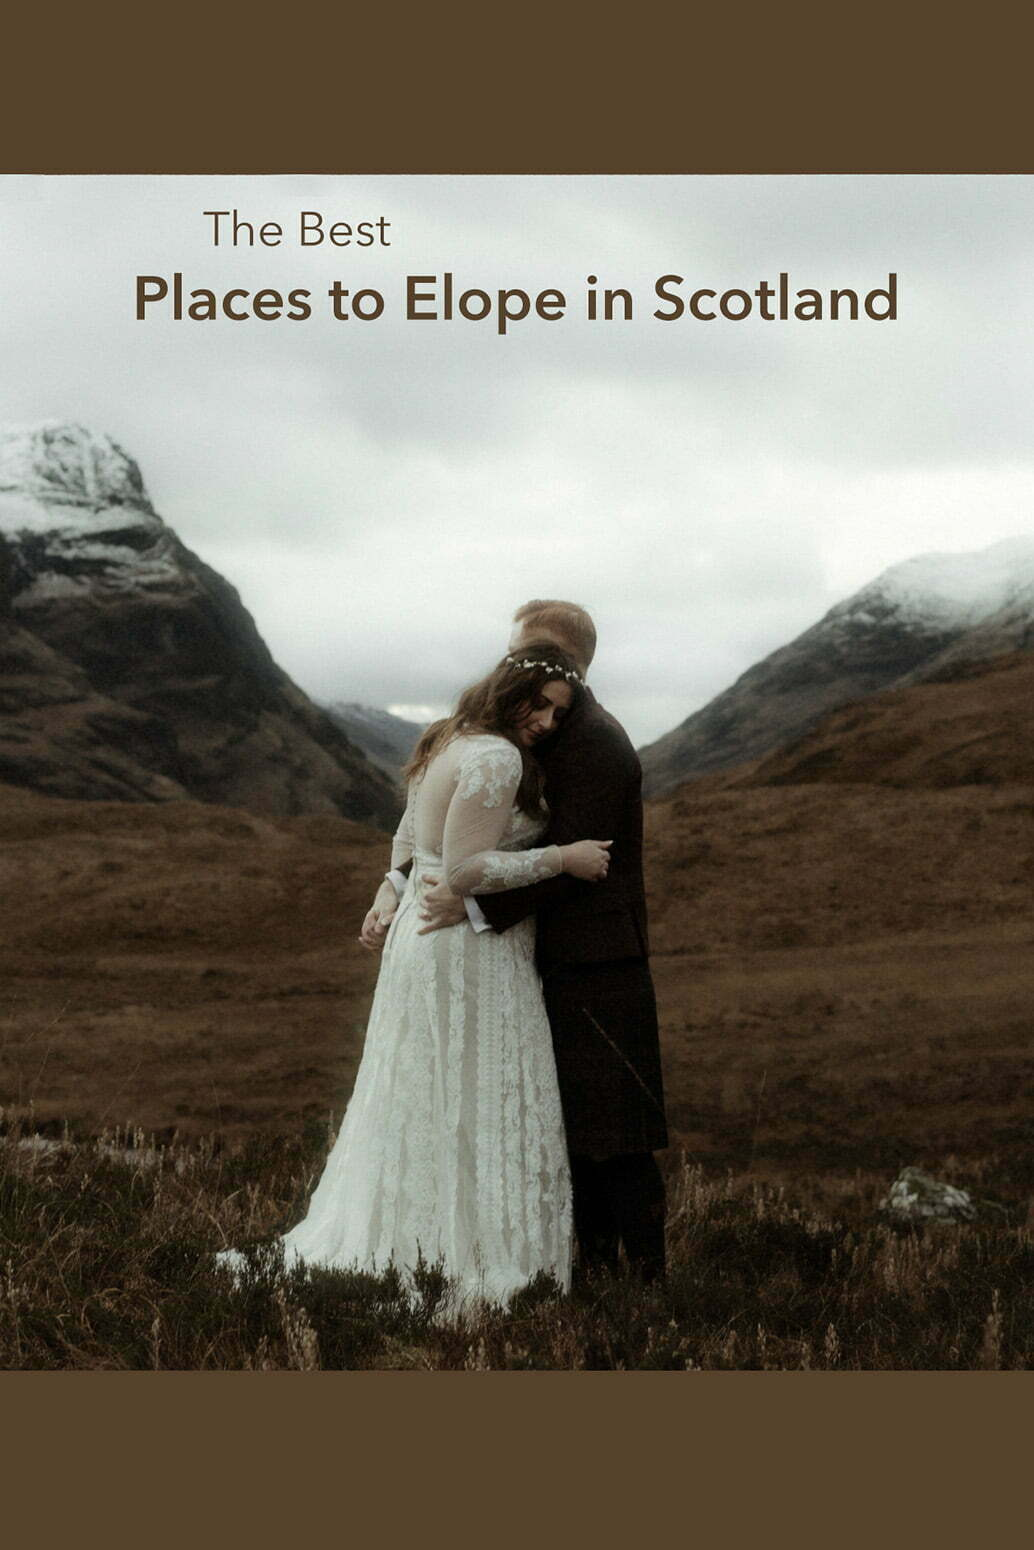 places to elope in scotland guide and information